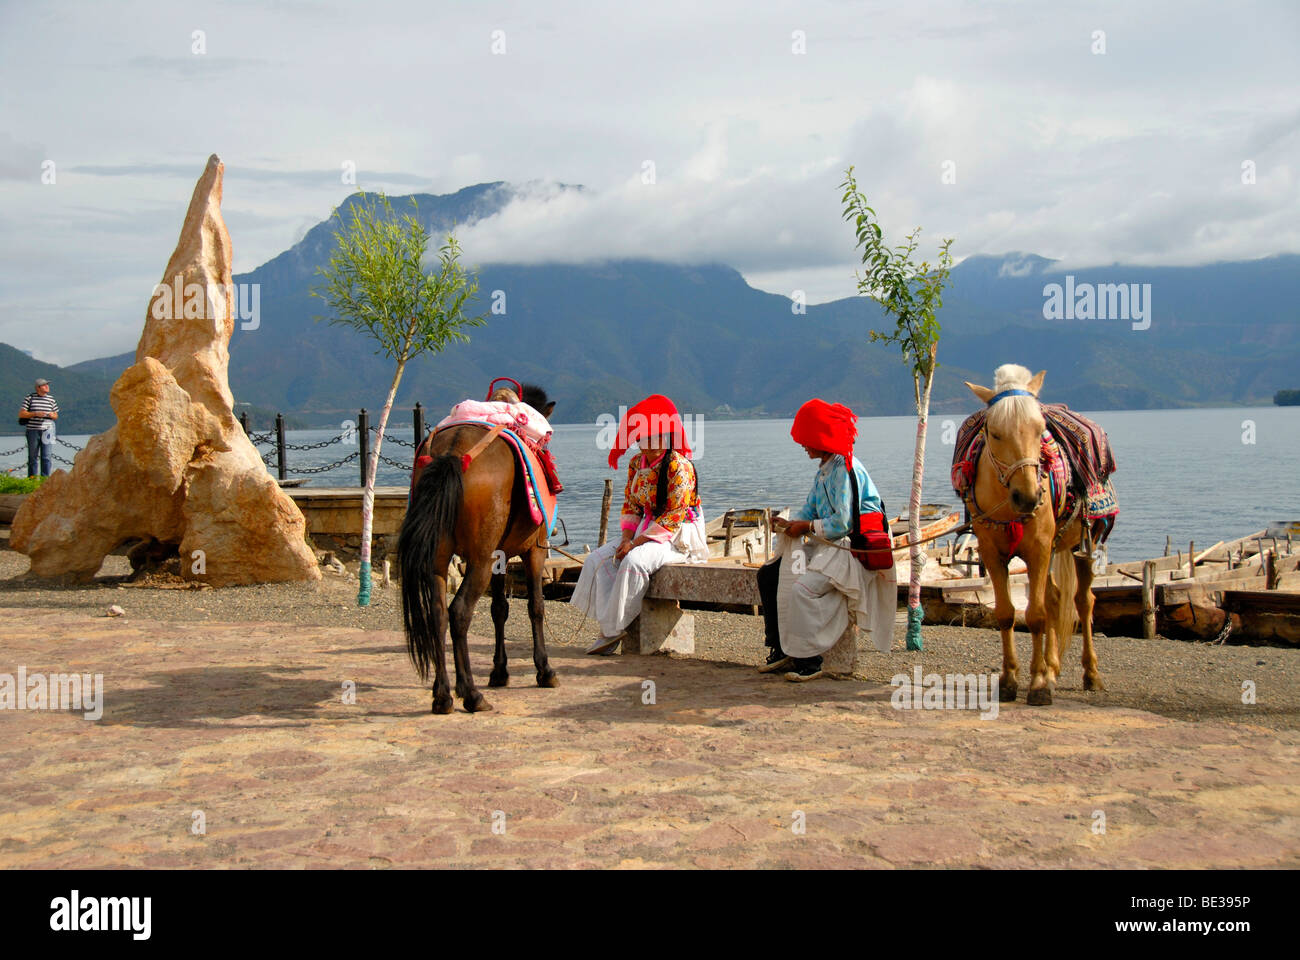 Ethnology, women of the Mosu ethnicity dressed in traditional costumes with horses on the shore, Luoshui, Lugu Hu - Stock Image